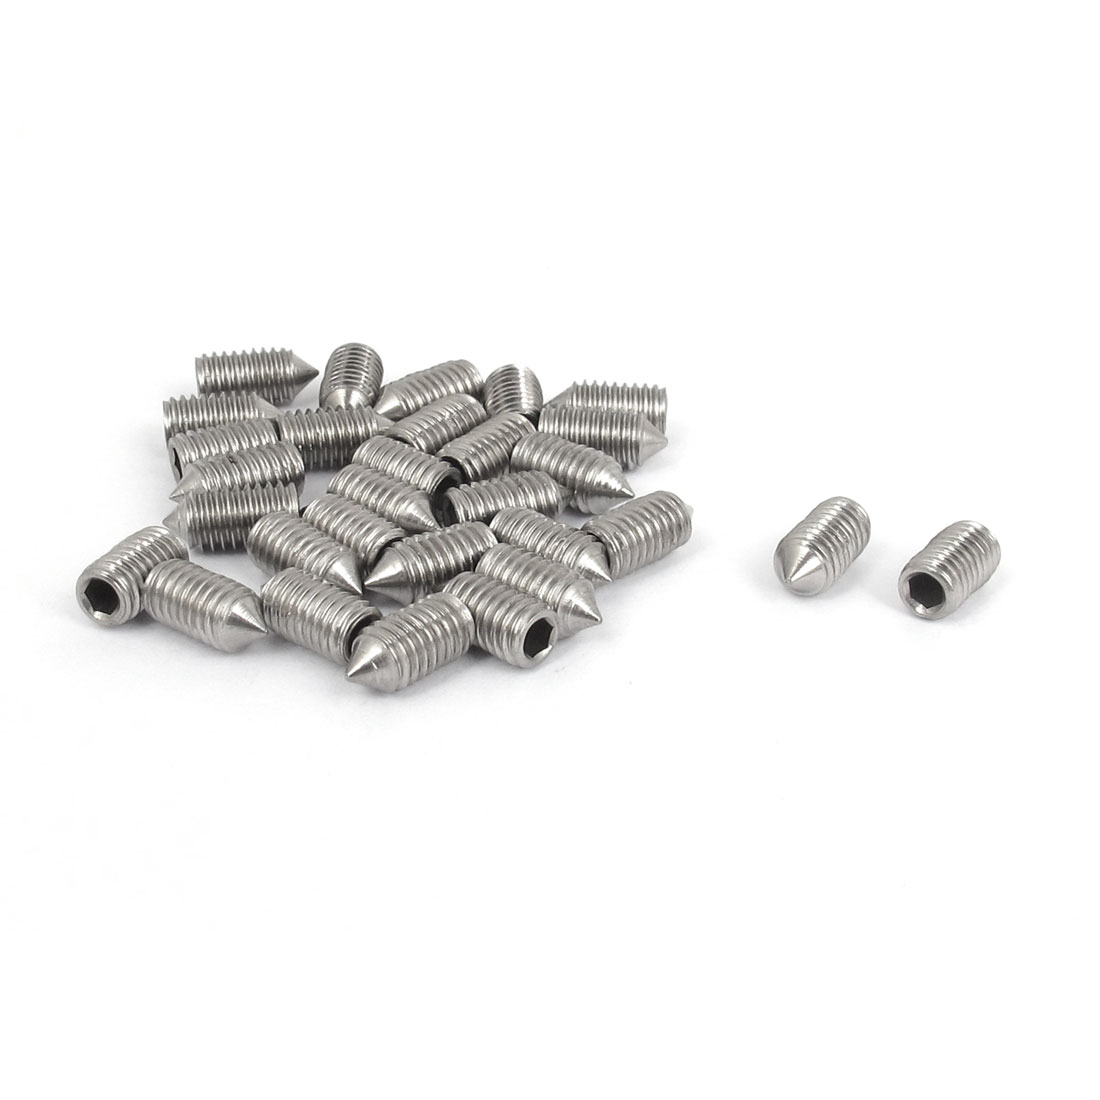 M5x10mm 304 Stainless Steel Cone Point Hexagon Socket Grub Screws 30pcs